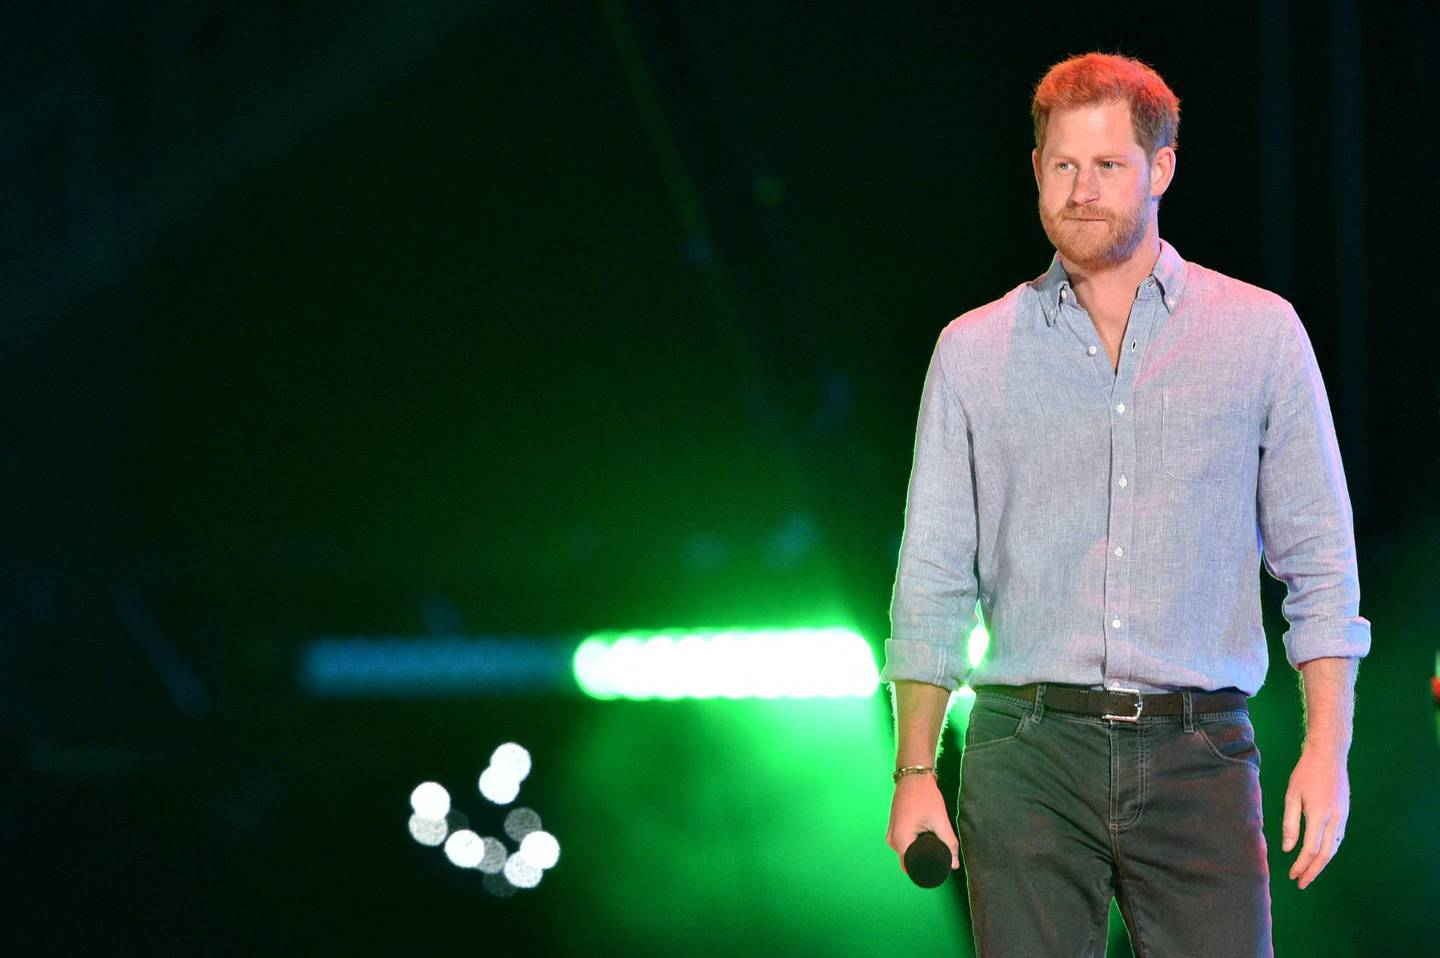 """(FILES) In this file photo taken on May 02, 2021 Co-Chair Britain's Prince Harry, Duke of Sussex, arrives onstage to speak during the taping of the """"Vax Live"""" fundraising concert at SoFi Stadium in Inglewood, California. In a new documentary series set for release May 21, 2021 Prince Harry is once again emphasizing that his family turned a blind eye to the struggles of his wife Meghan Markle, saying he will """"never be bullied into silence."""" / AFP / VALERIE MACON"""